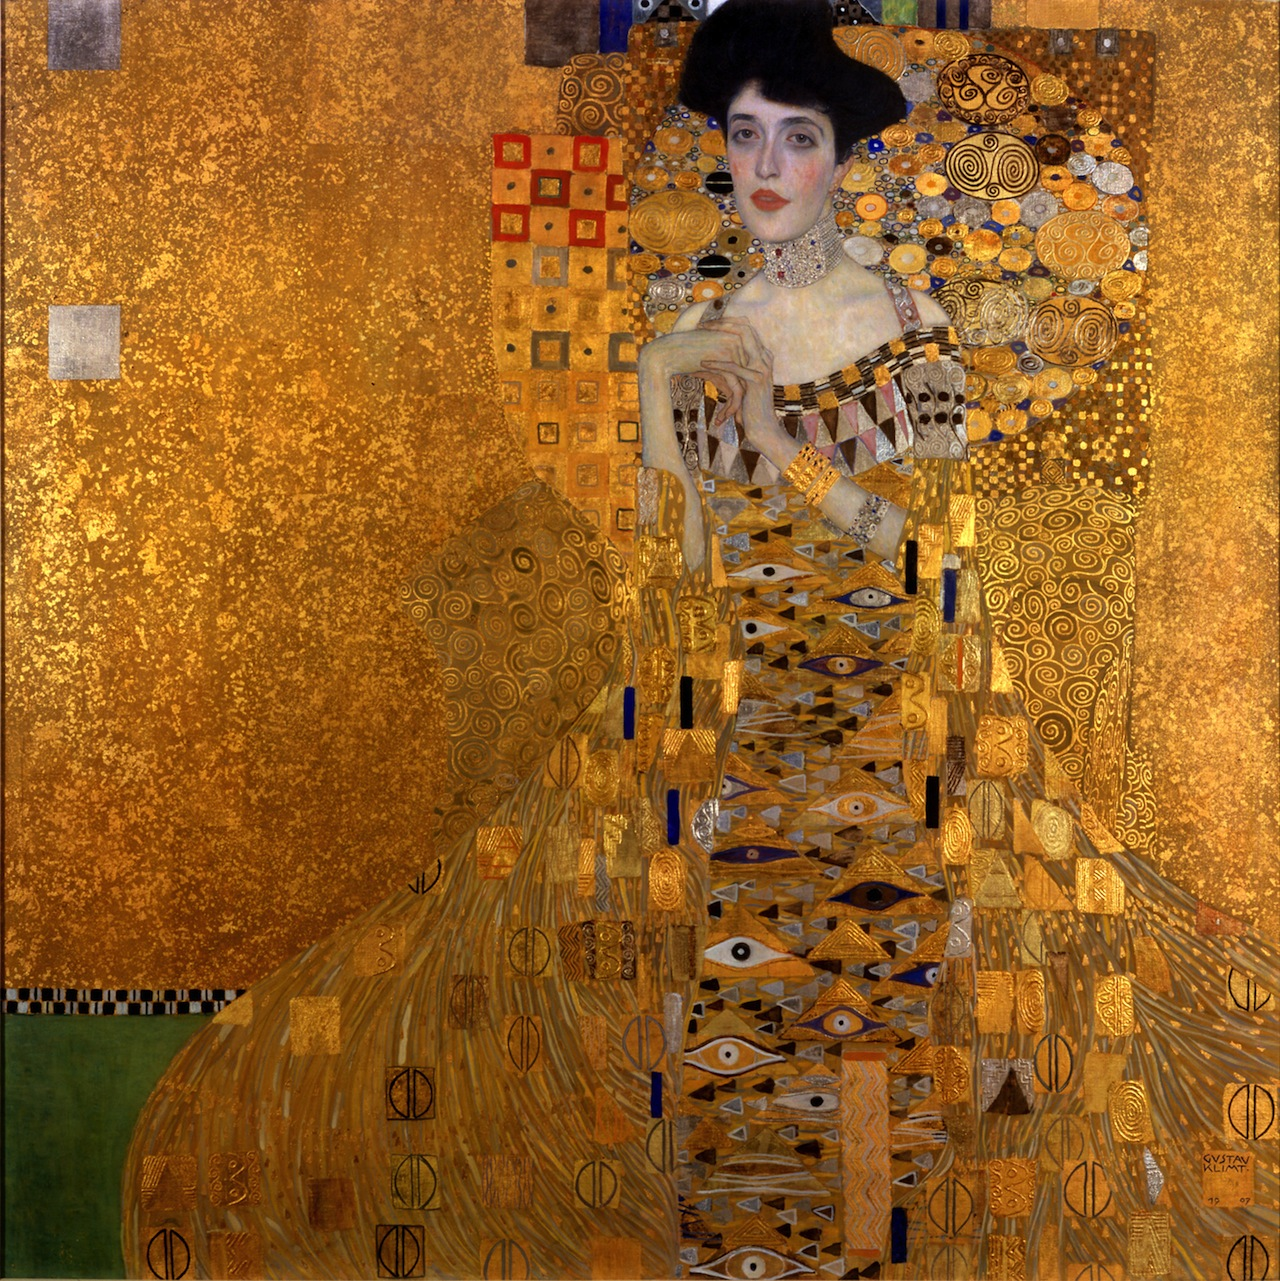 A portrait of Adele Bloch-Bauer's, painted by Gustav Klimt in 1907 and later seized by the Nazis. (Image via Wikimedia)